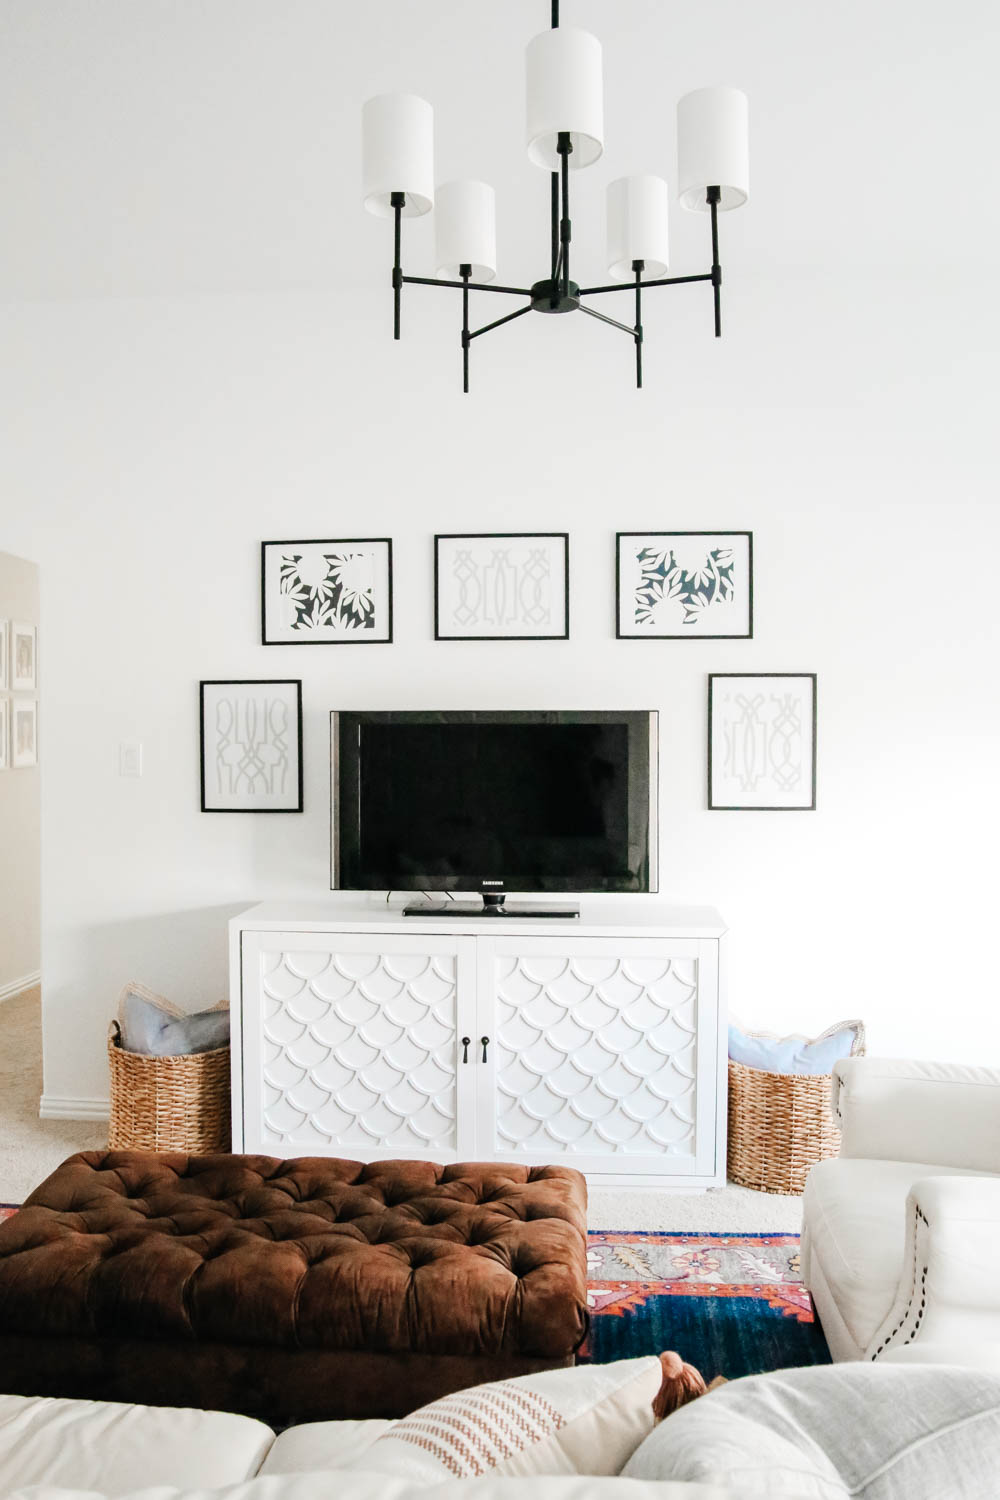 gallery wall ideas, tv wall with gallery wall, game room decor, family room ideas. #ABlissfulNest #gameroom #mediaroom